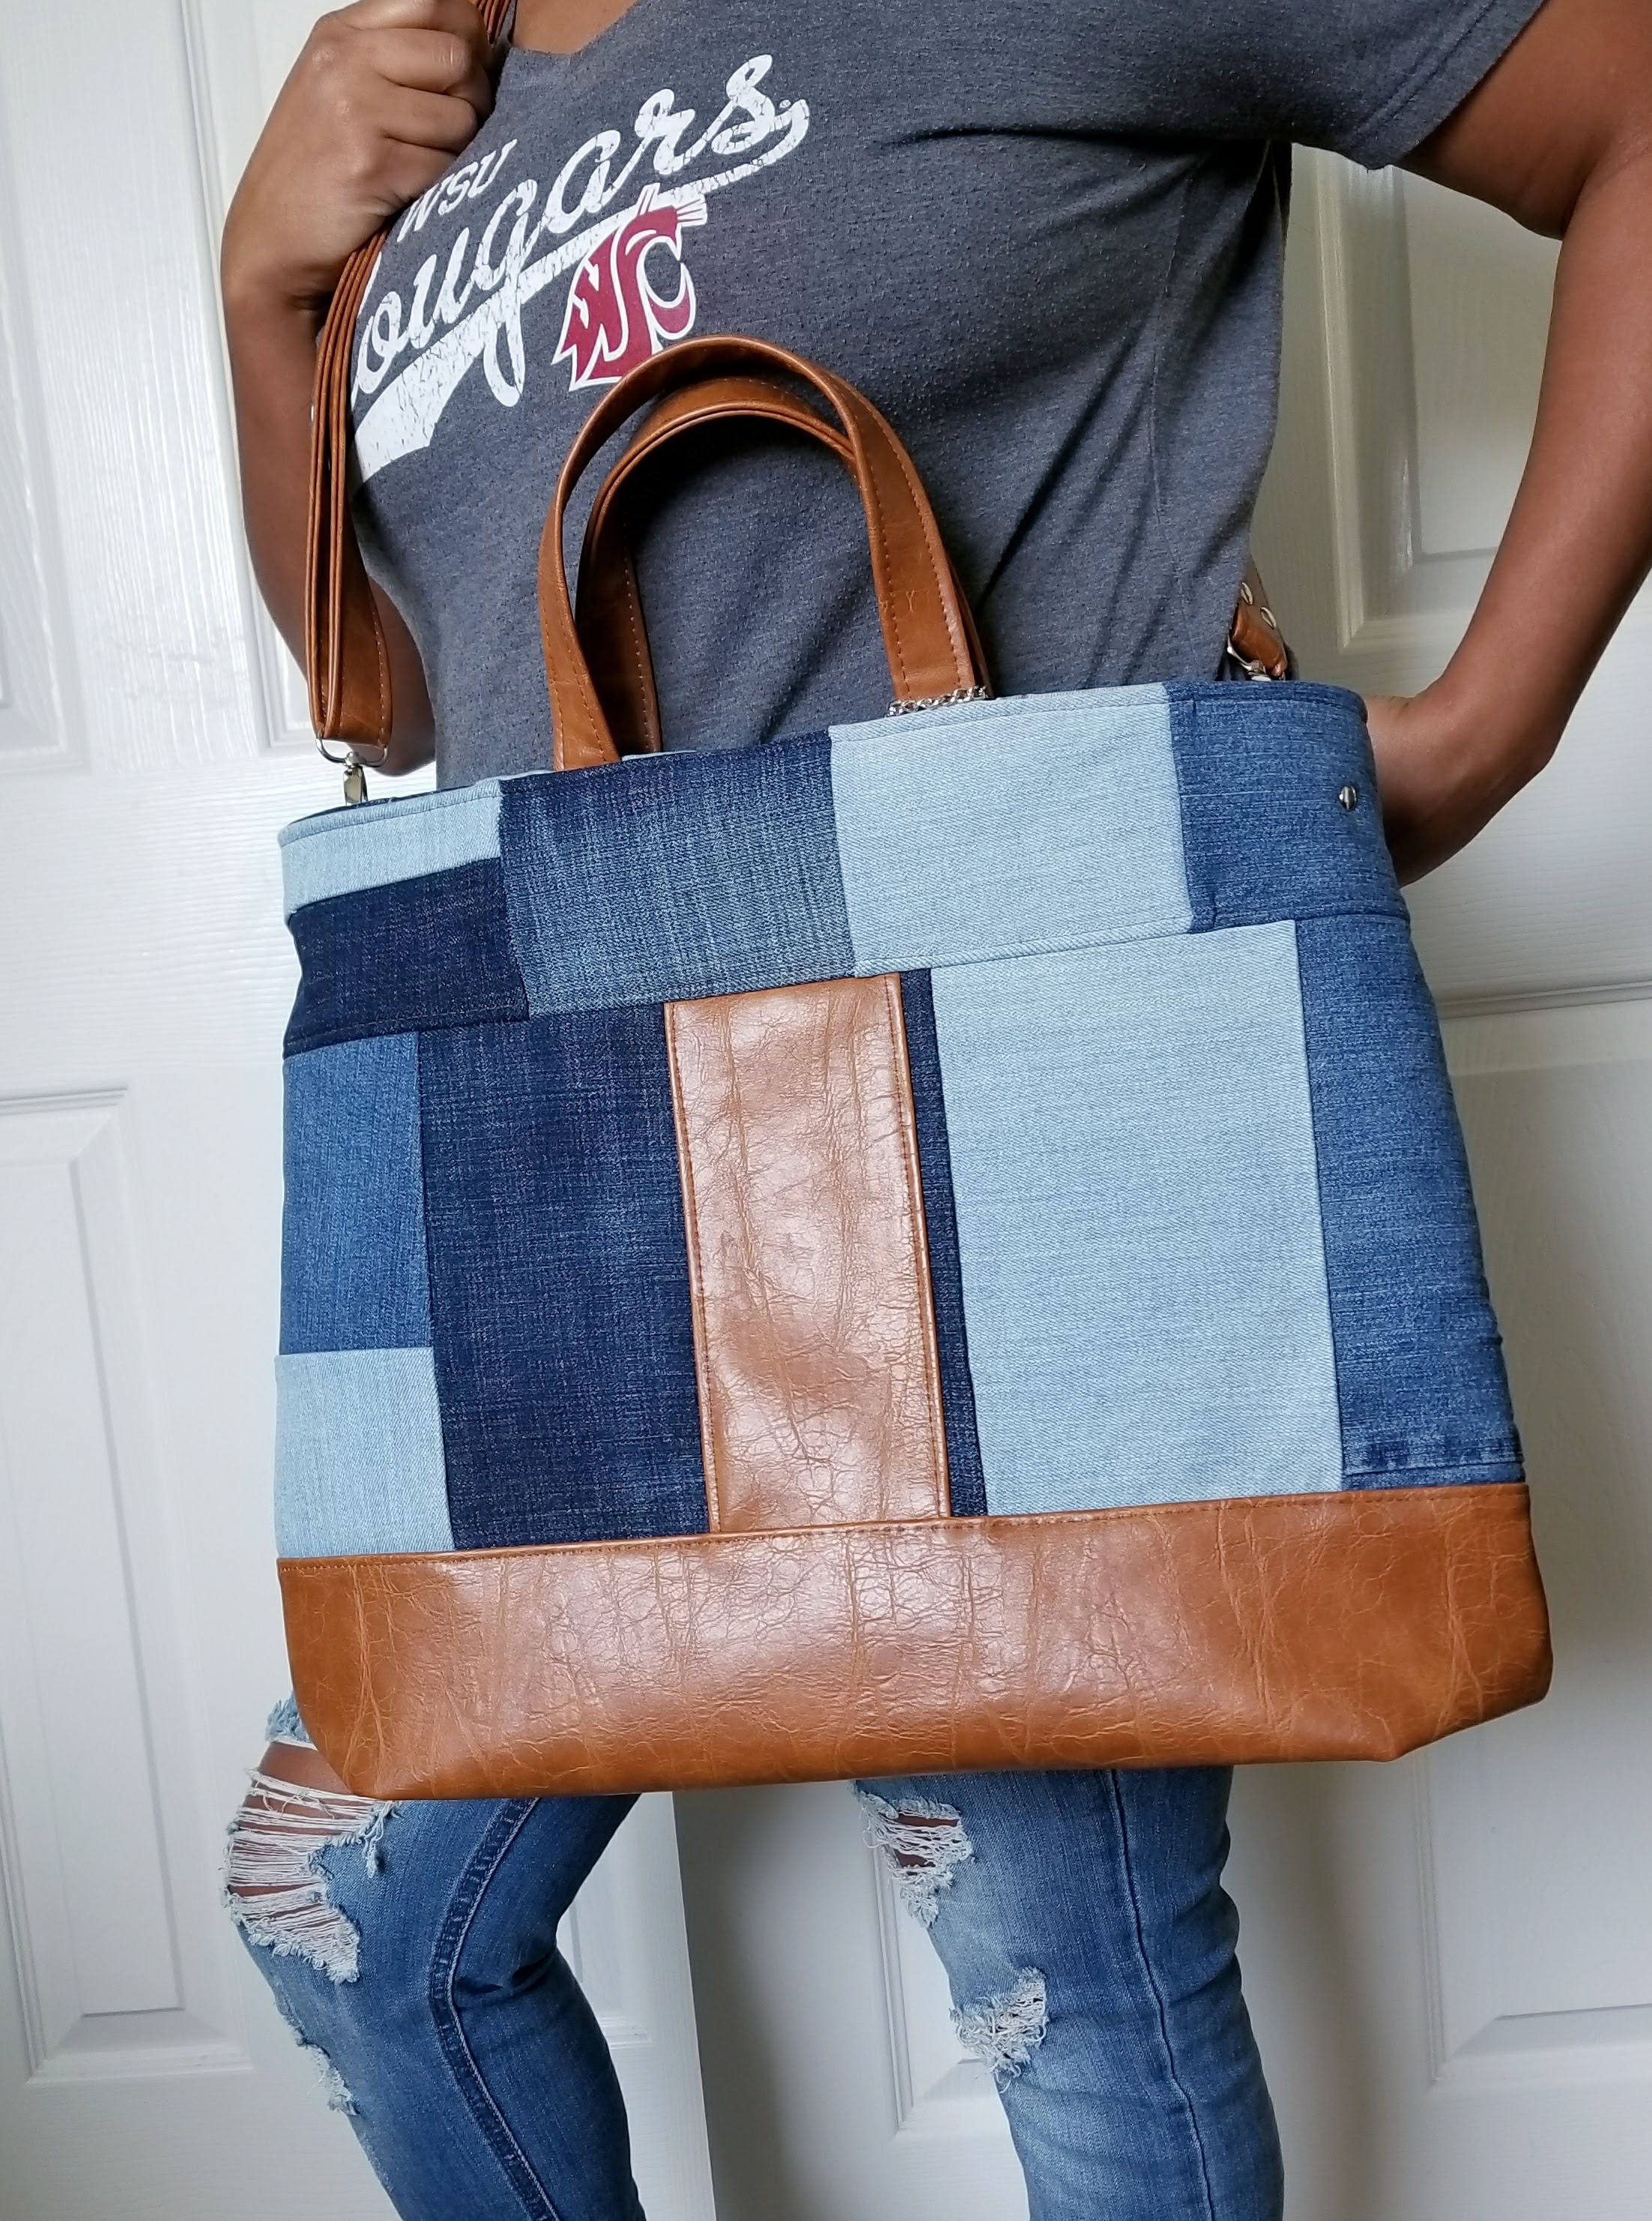 cc7ec7e598d Denim Bag, Blue Bag, Brown Faux Leather Bag, Crossbody, Tote ...